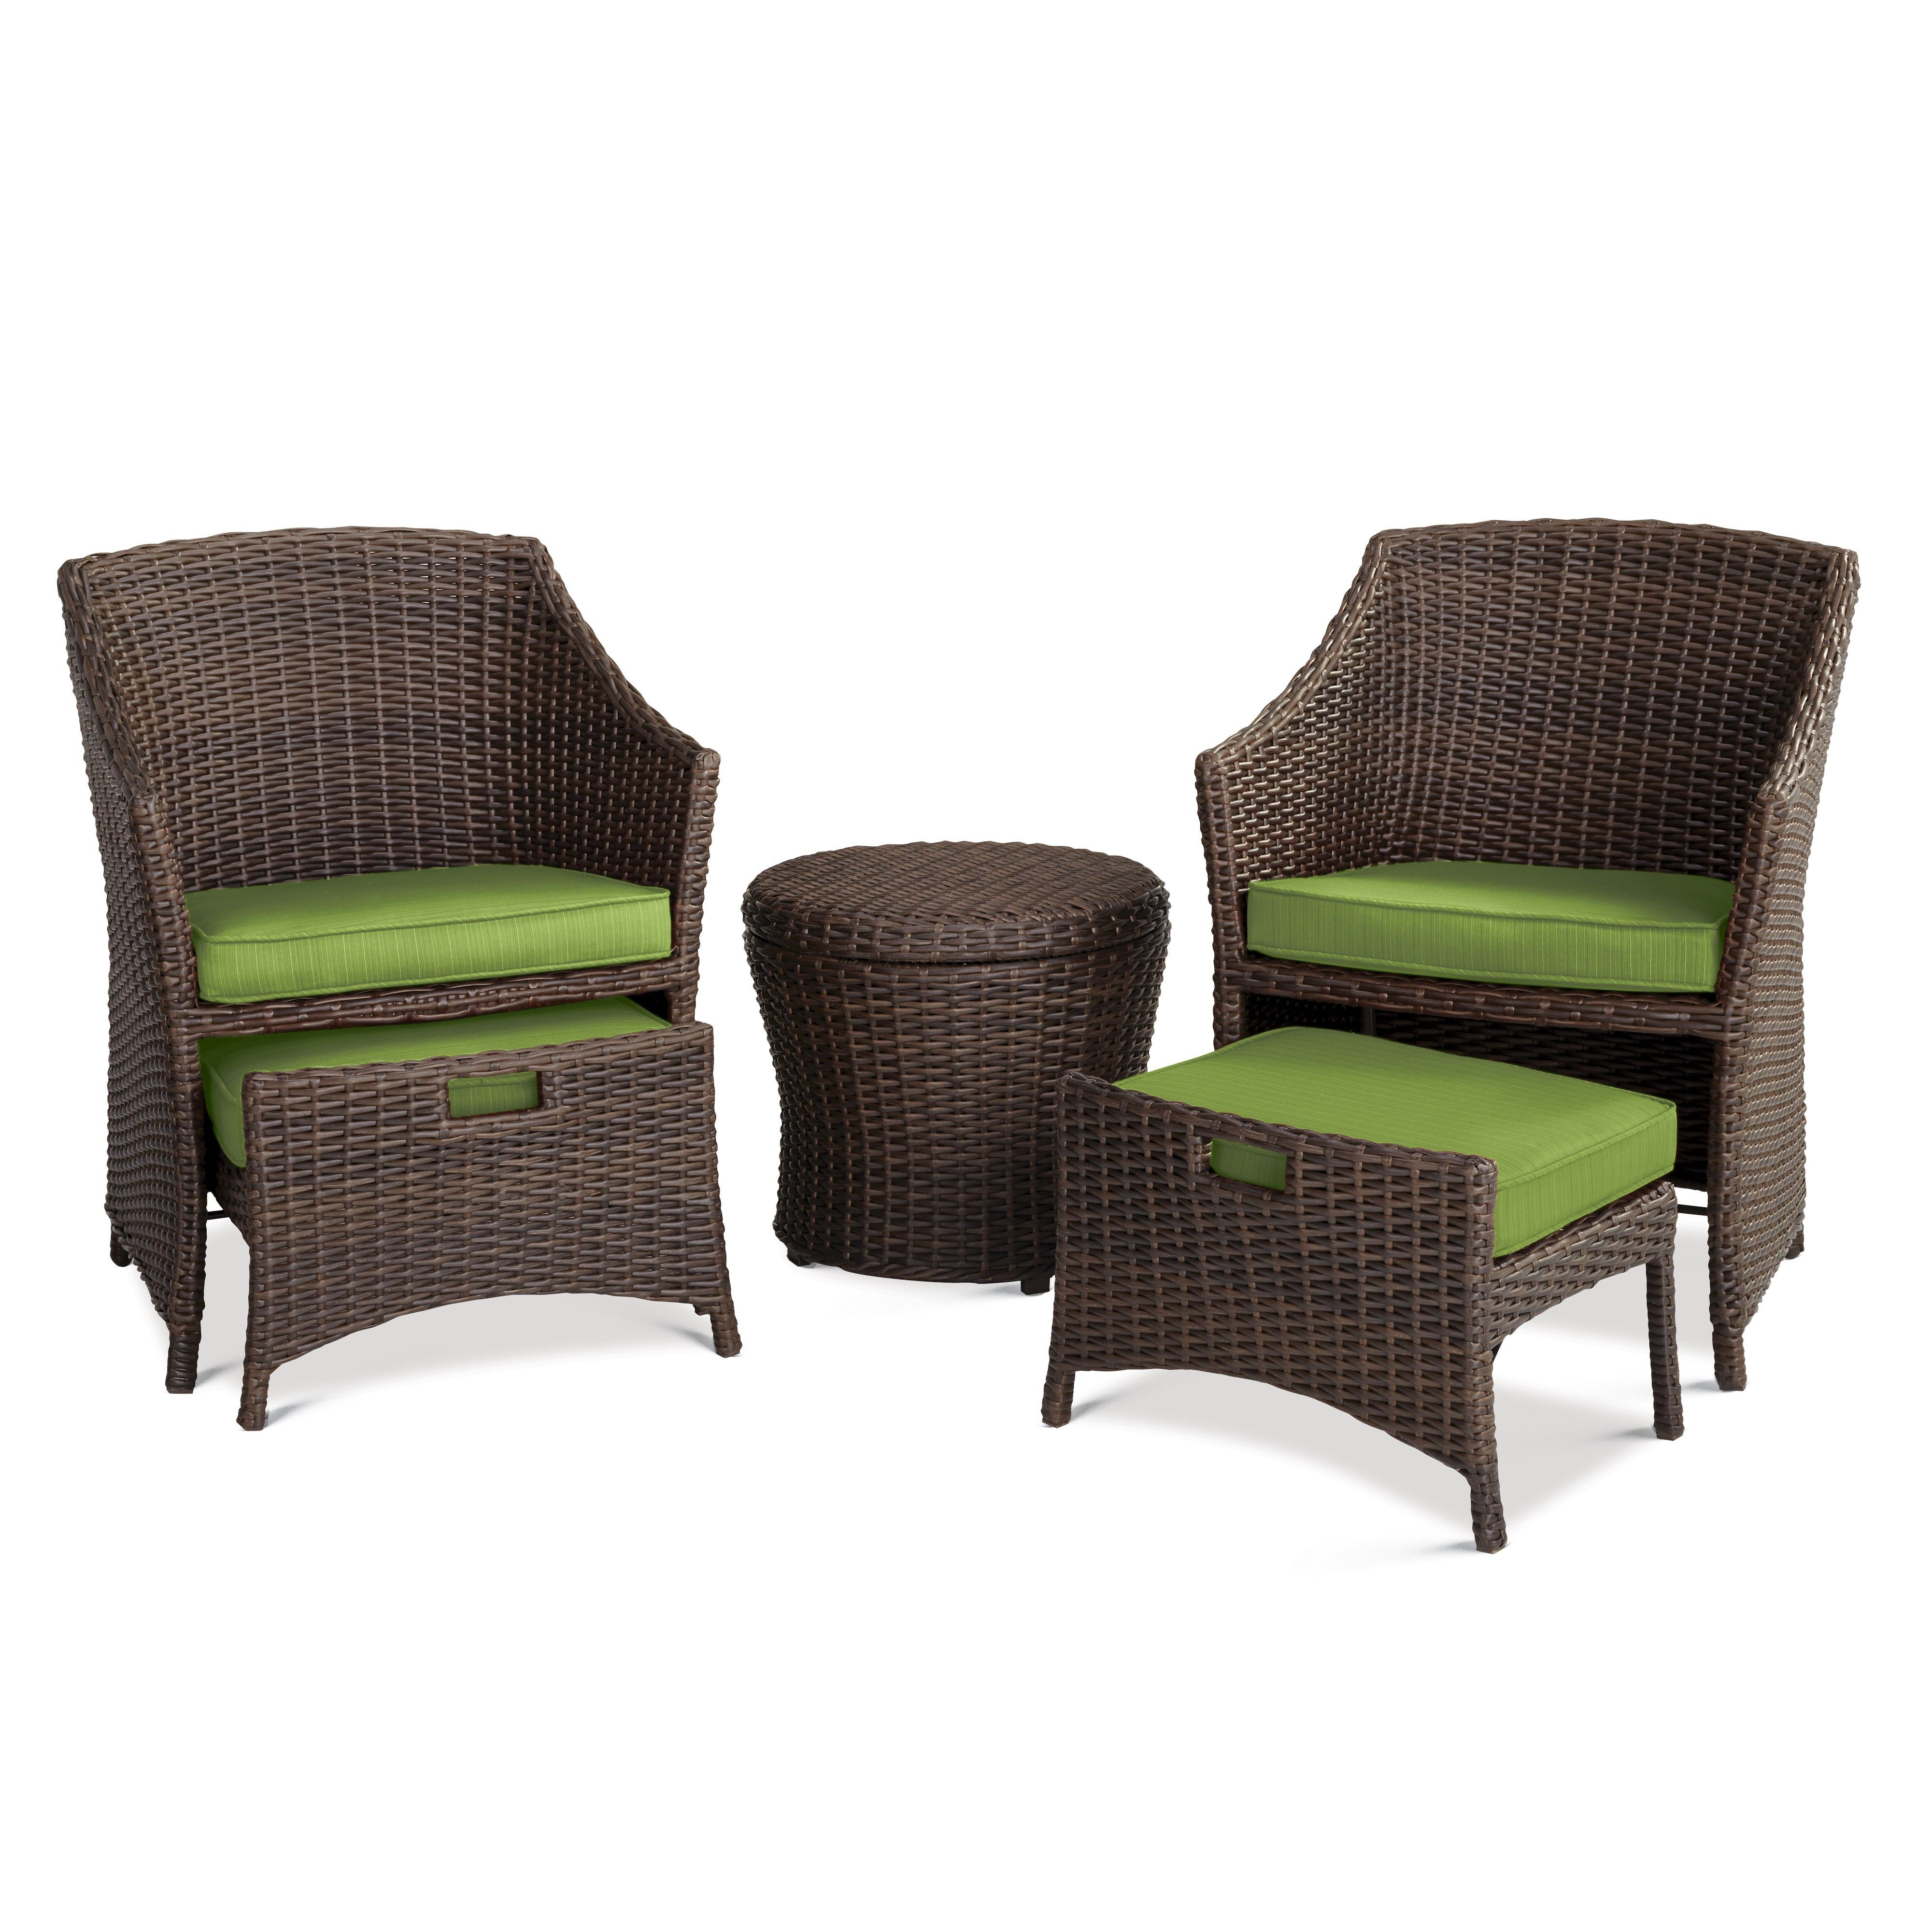 Relax with the Belvedere 5 Piece Chat Set from Threshold This set